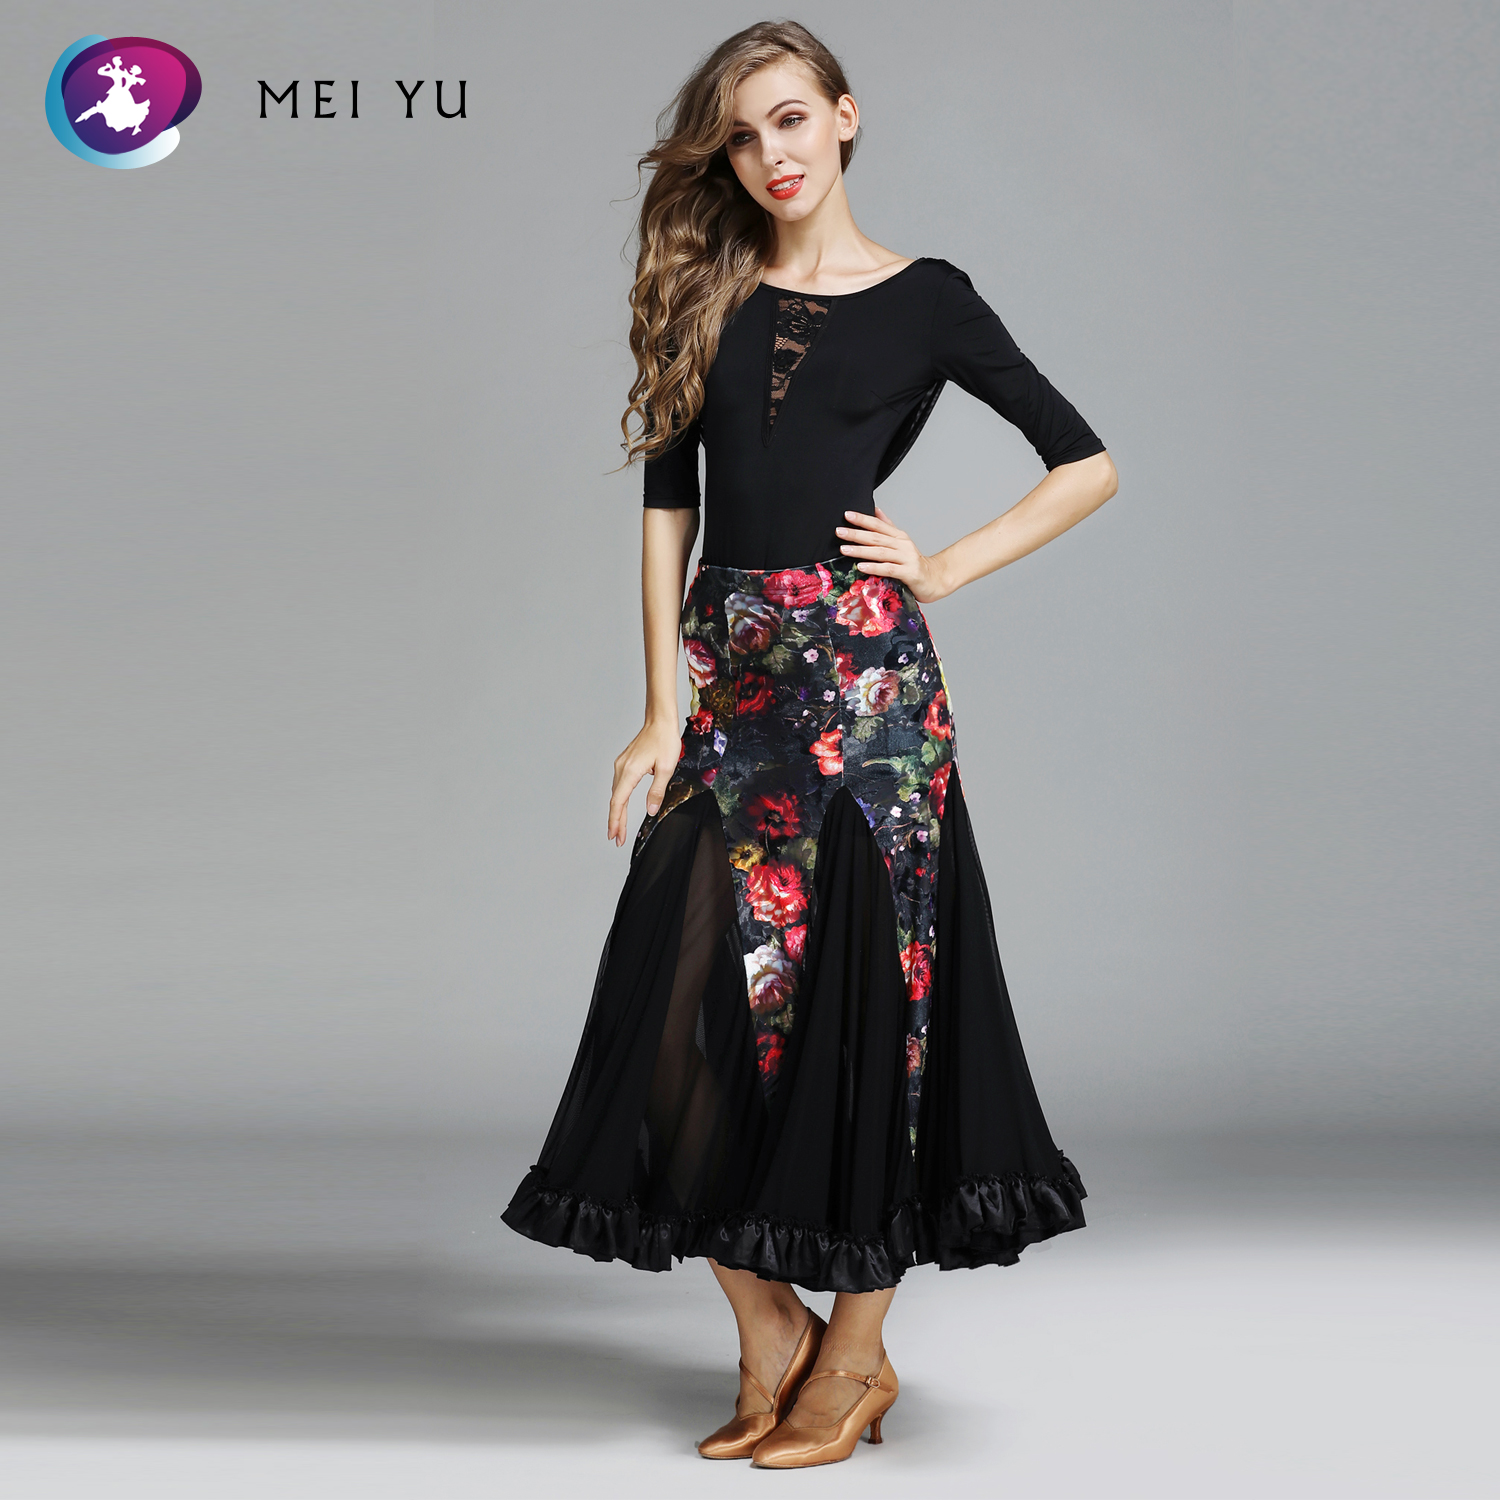 Liberal Mei Yu My777 And My778 Modern Dance Costume Top And Skirt Suits Women Lady Dancing Dresses Ballroom Costumes Evening Party Dress In Pain Novelty & Special Use